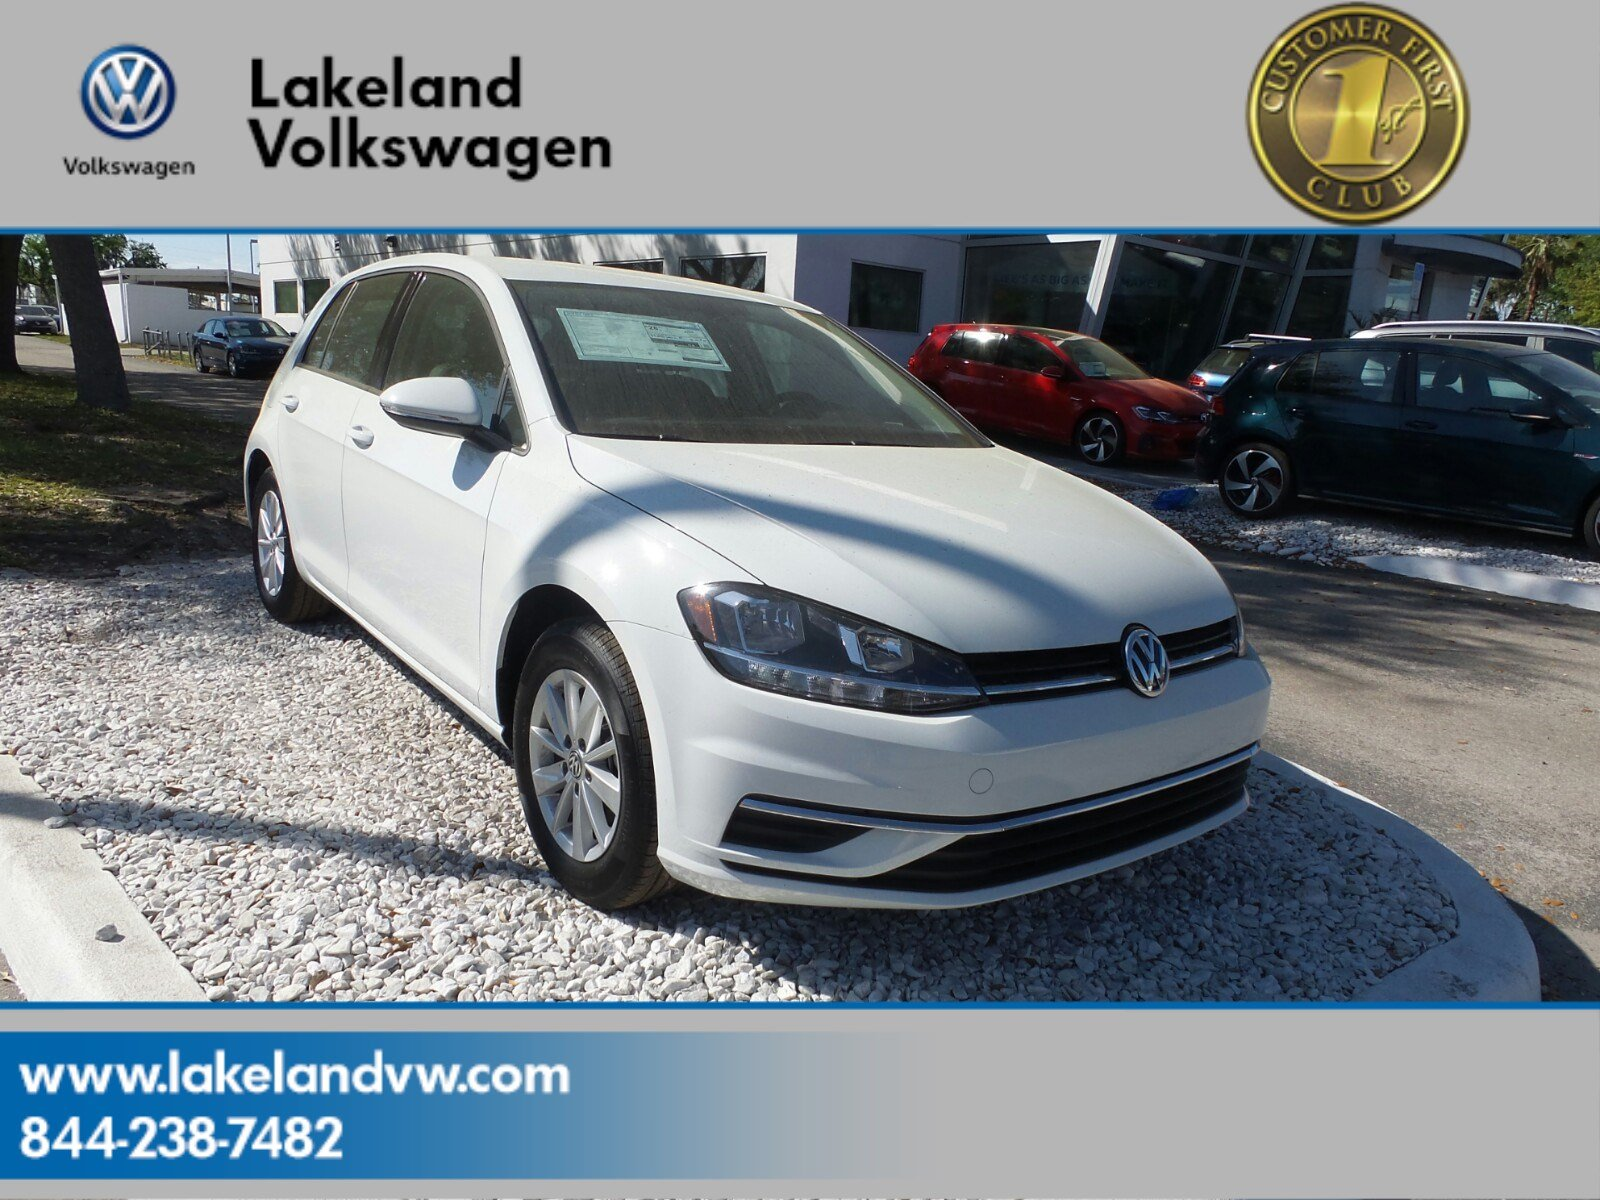 utility used awd volkswagen executive certified inventory touareg sport owned lakeland pre